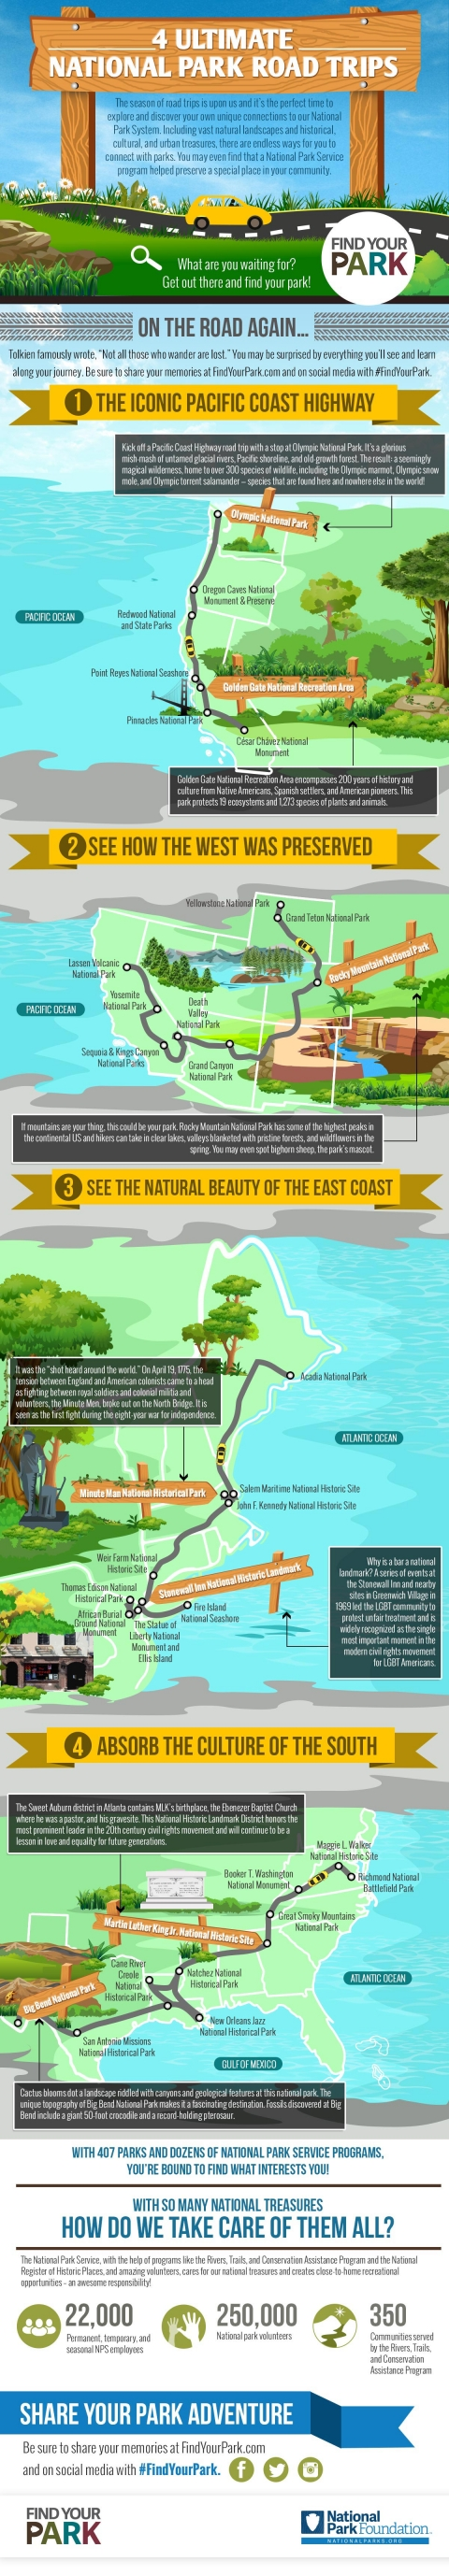 4 Ultimate National Park Road Trips Infographic